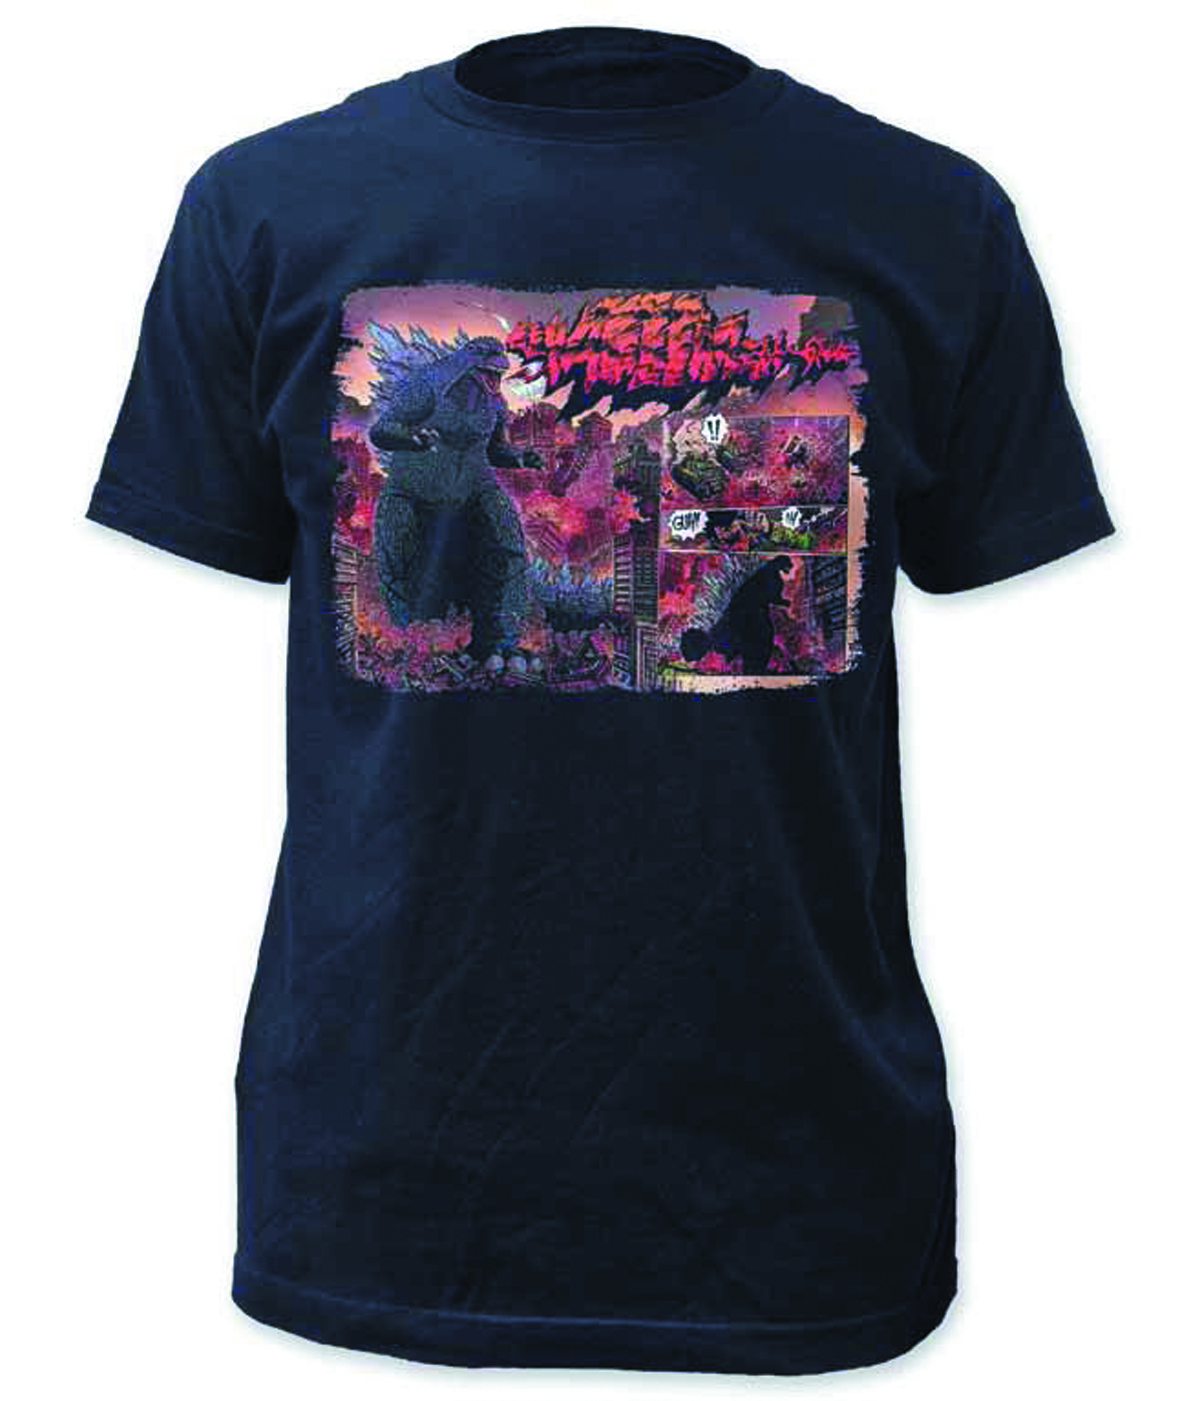 GODZILLA SCREAM CITY PX NAVY T/S MED